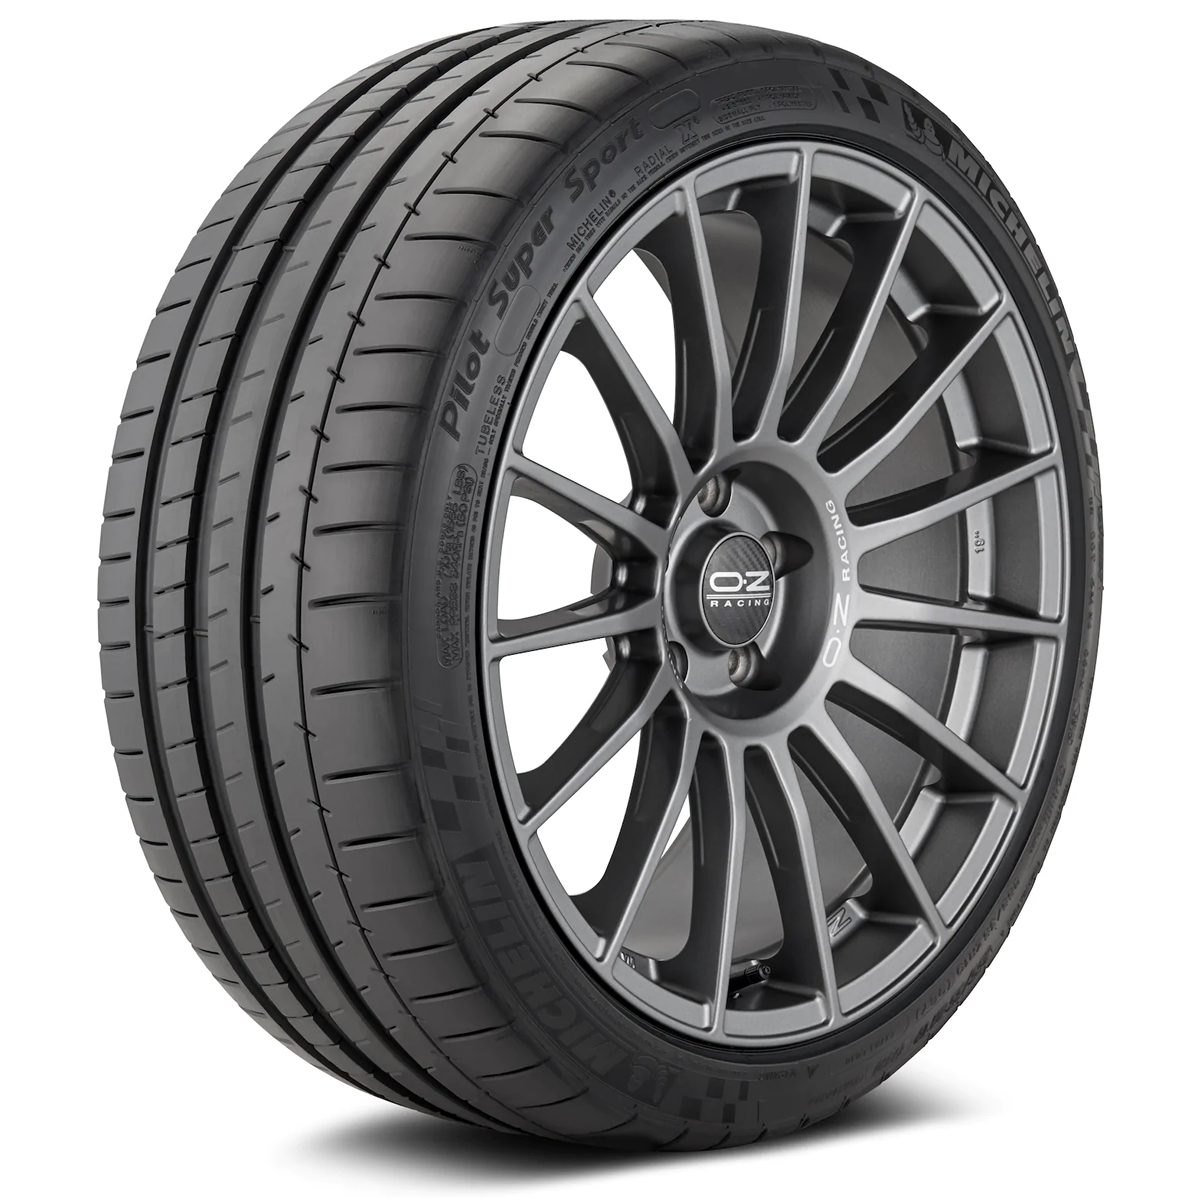 PNEU 285/35-21 105Y PILOT SUPER SPORT MICHELIN